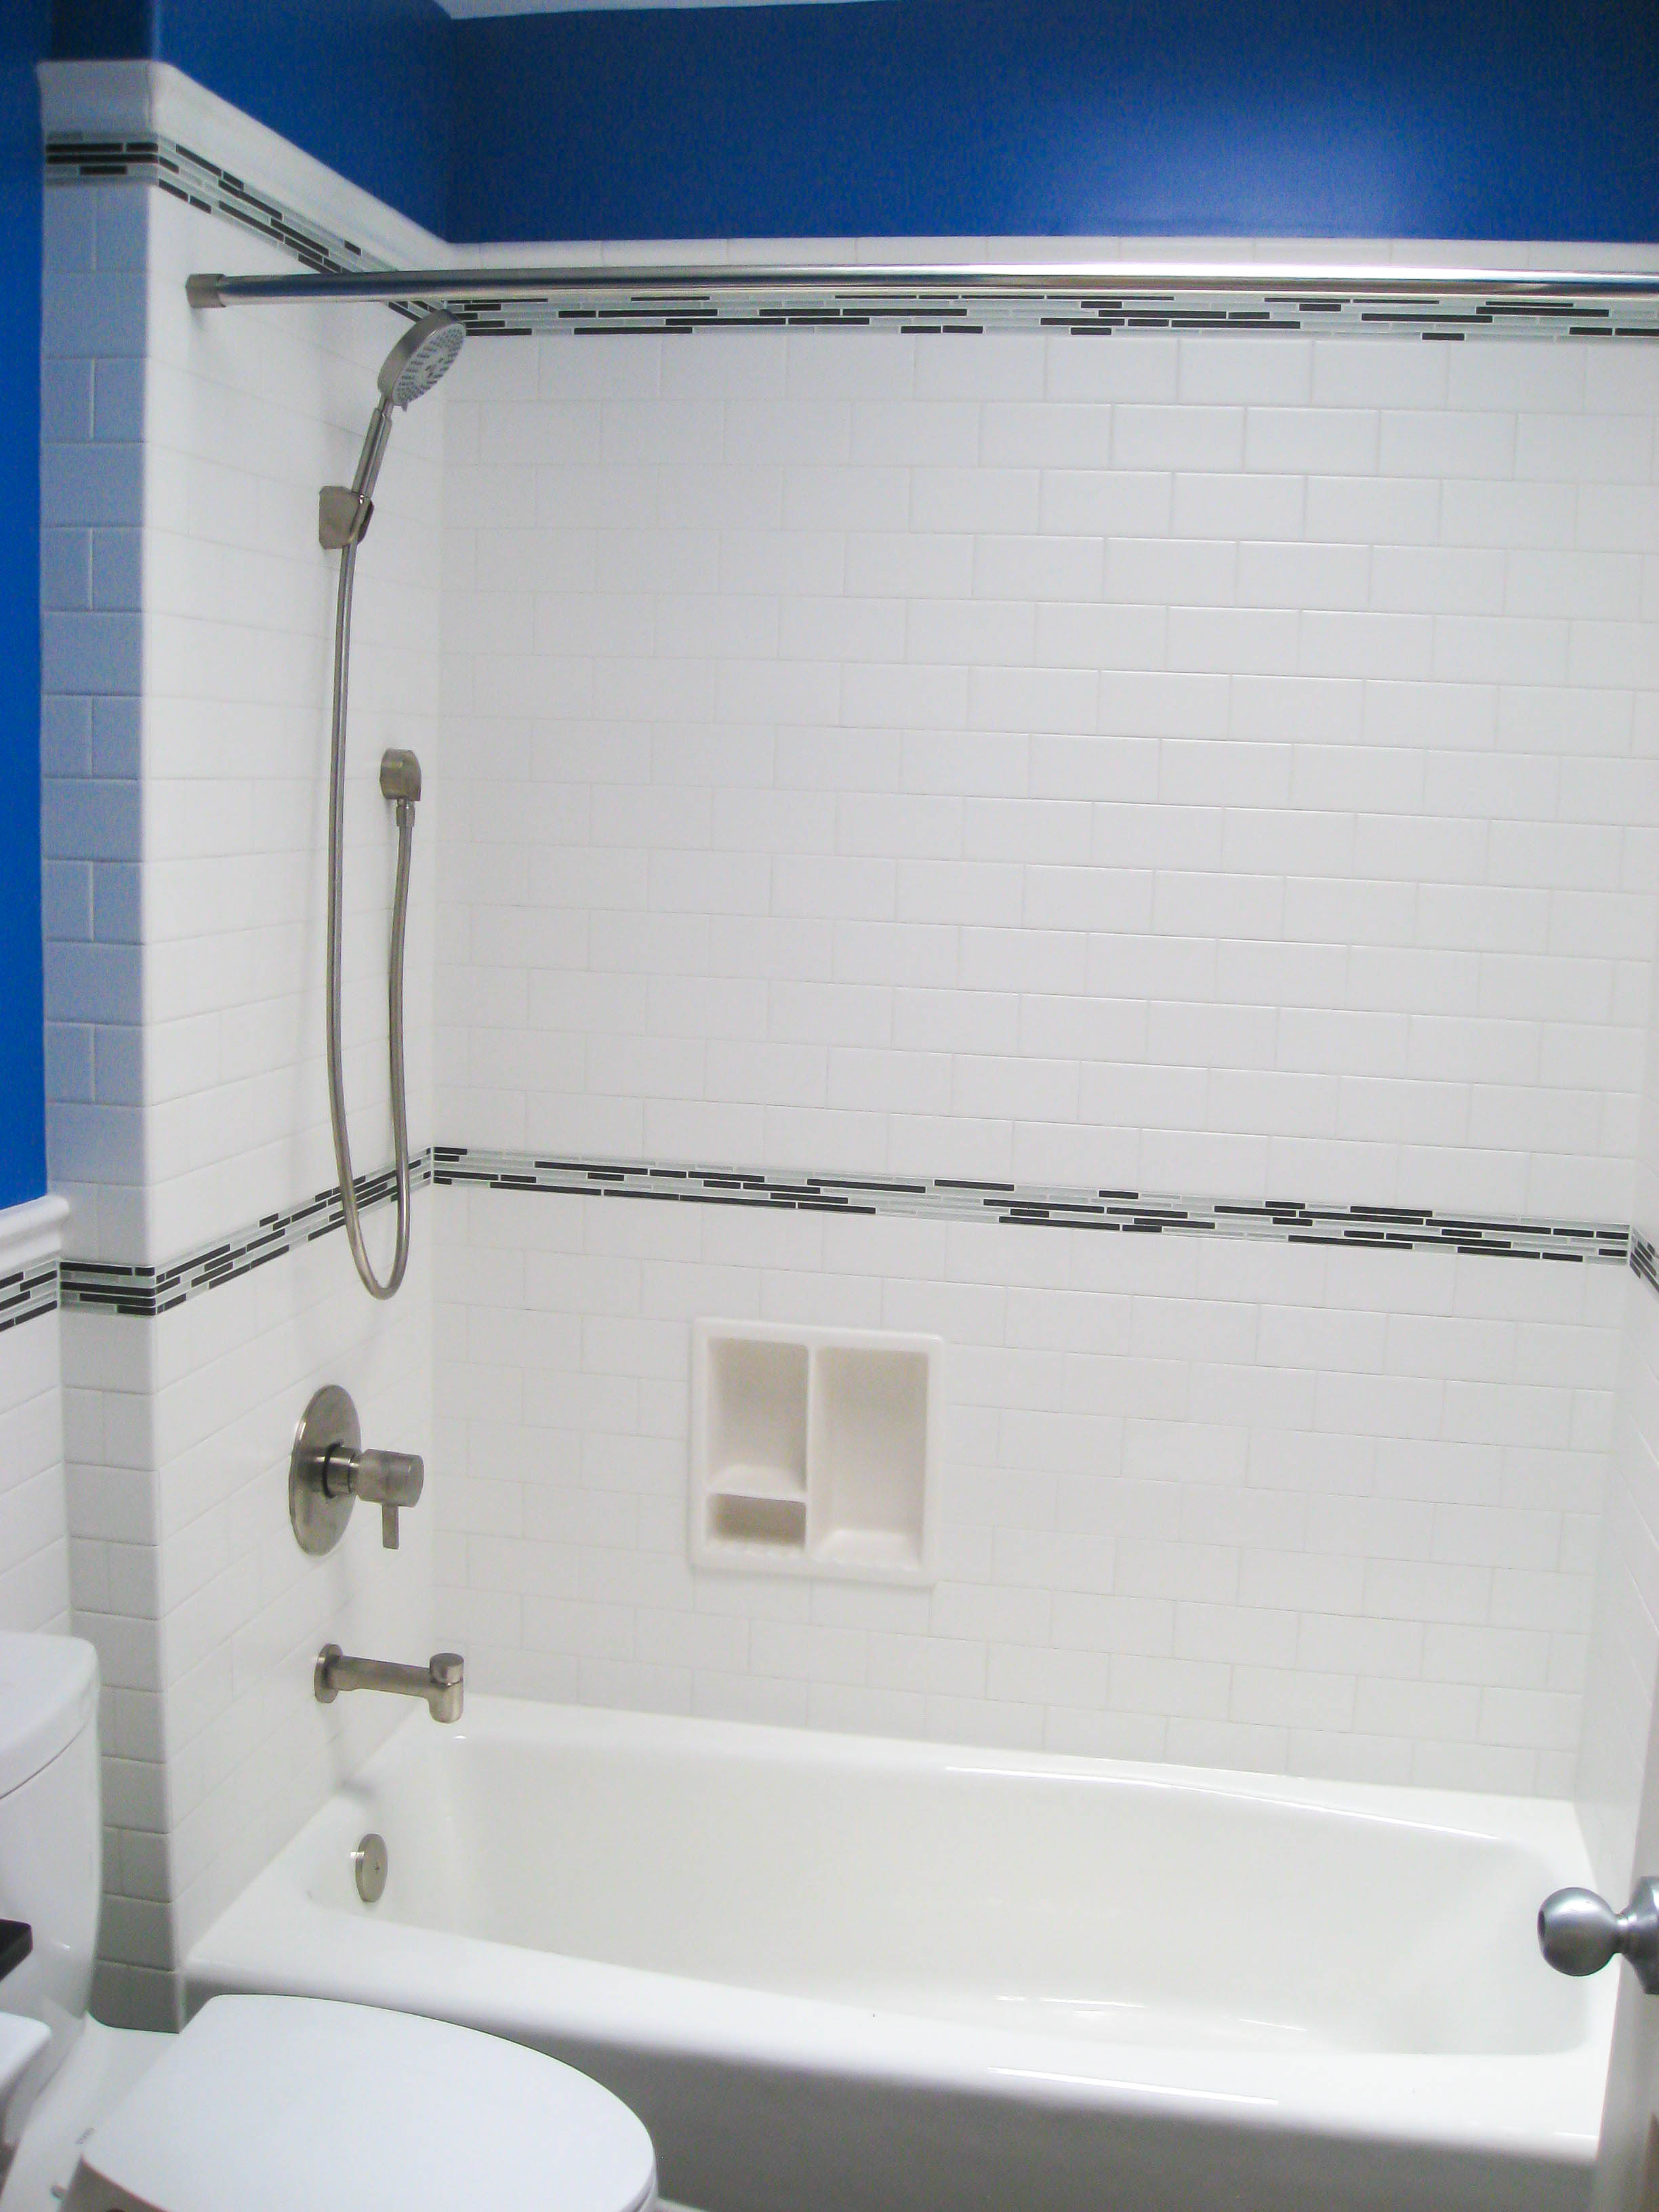 Tub Surrounds - Seattle Tile Contractor | IRC Tile Services